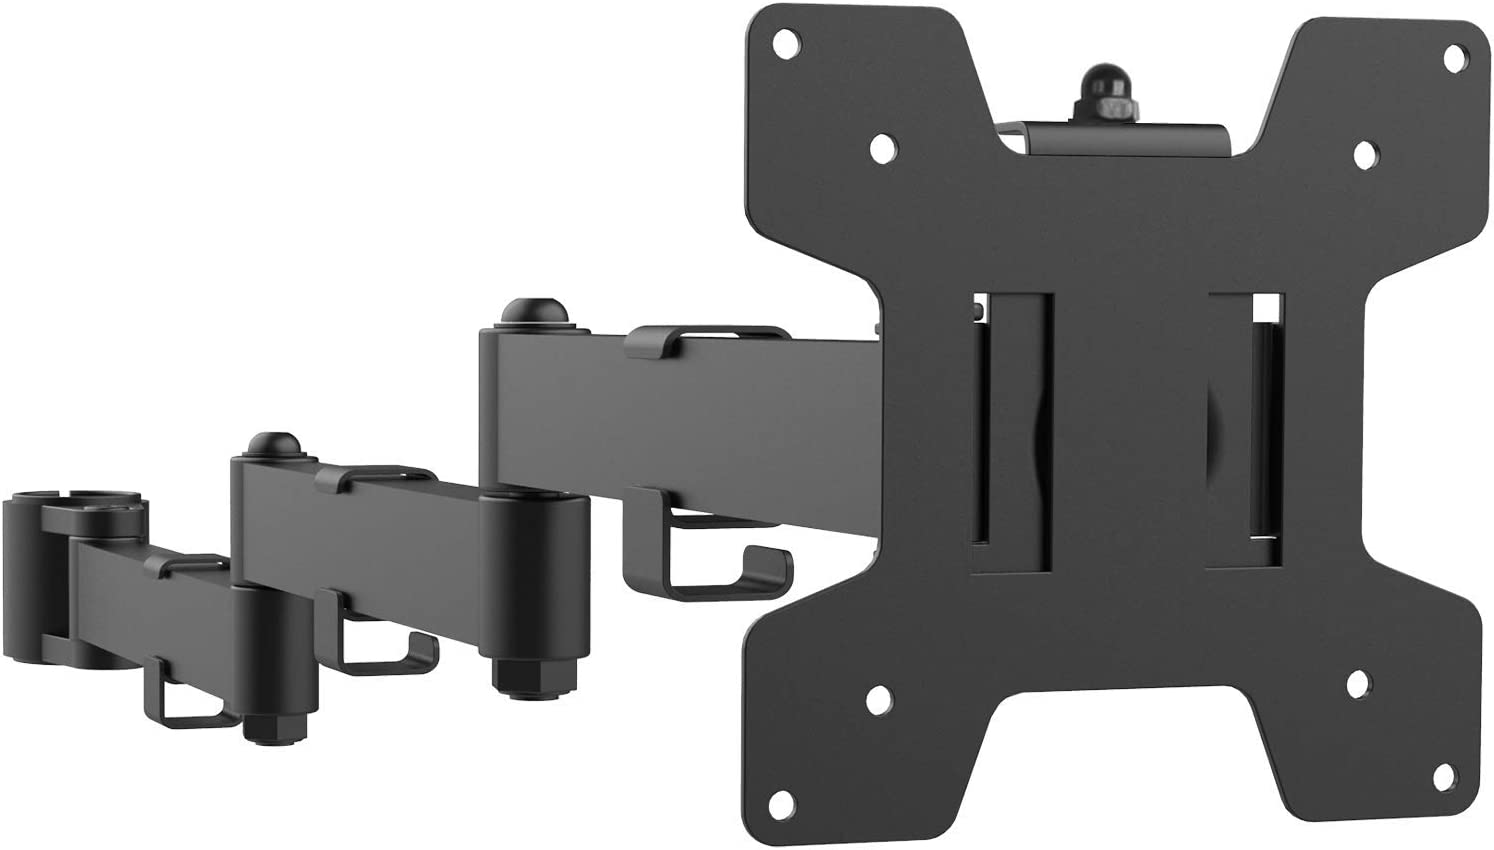 WALI Universal Single Fully Adjustable 3 Tier Arm Accessory for WALI Monitor Mounting System (001ARMXL), Black